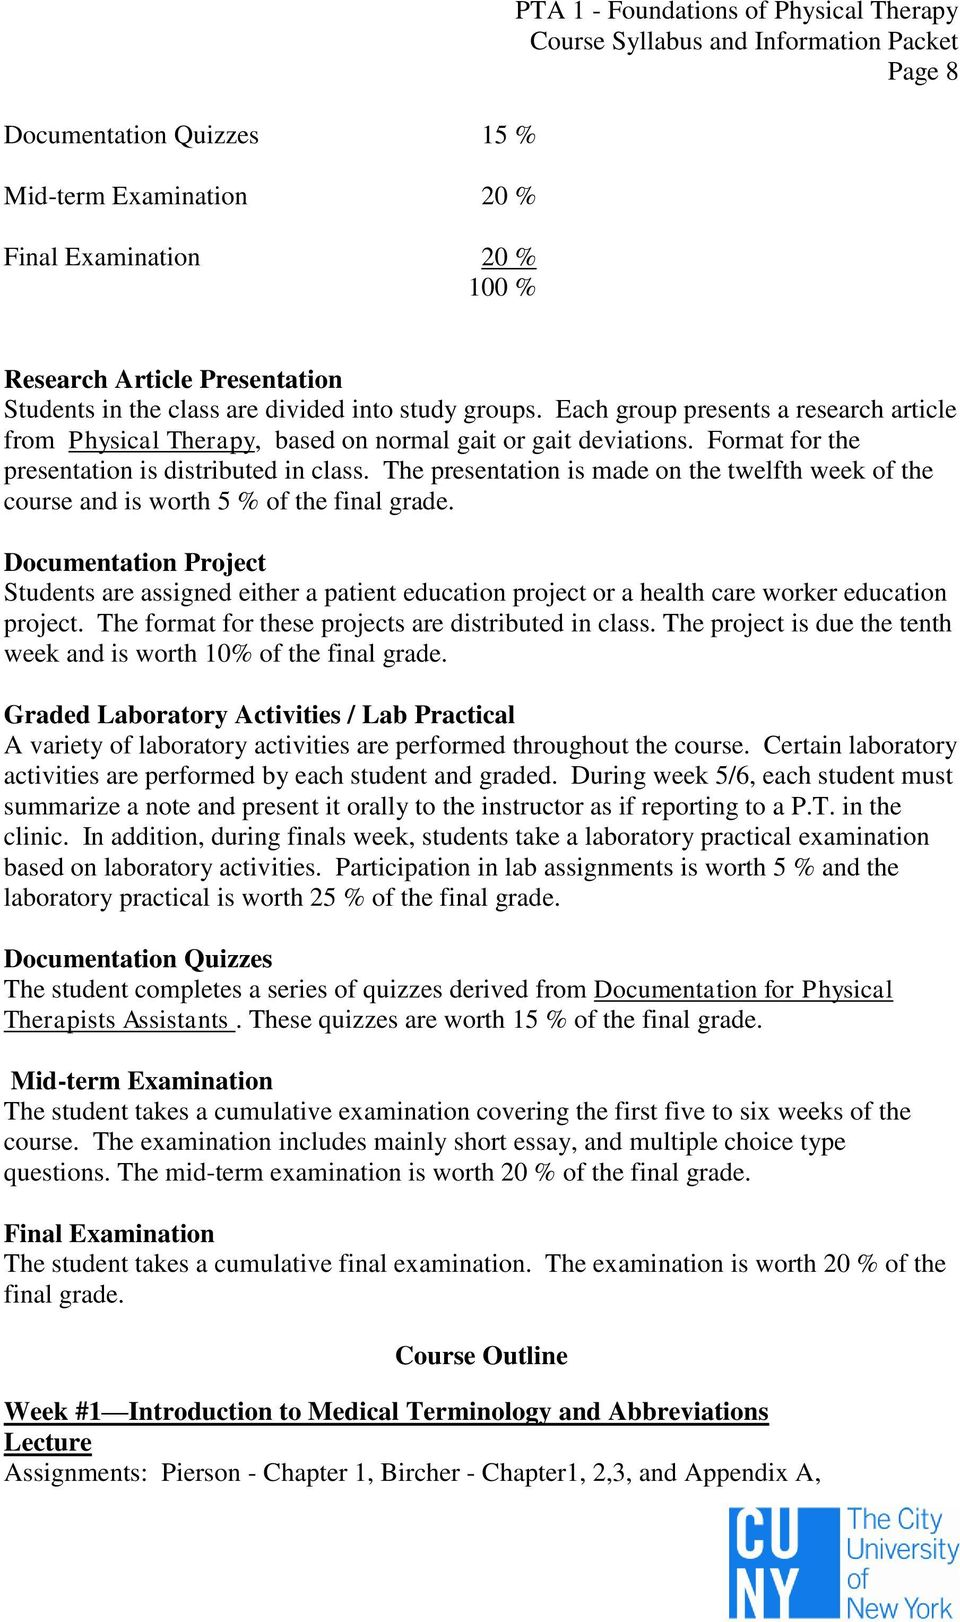 PTA 1 FOUNDATIONS OF PHYSICAL THERAPY SYLLABUS AND COURSE